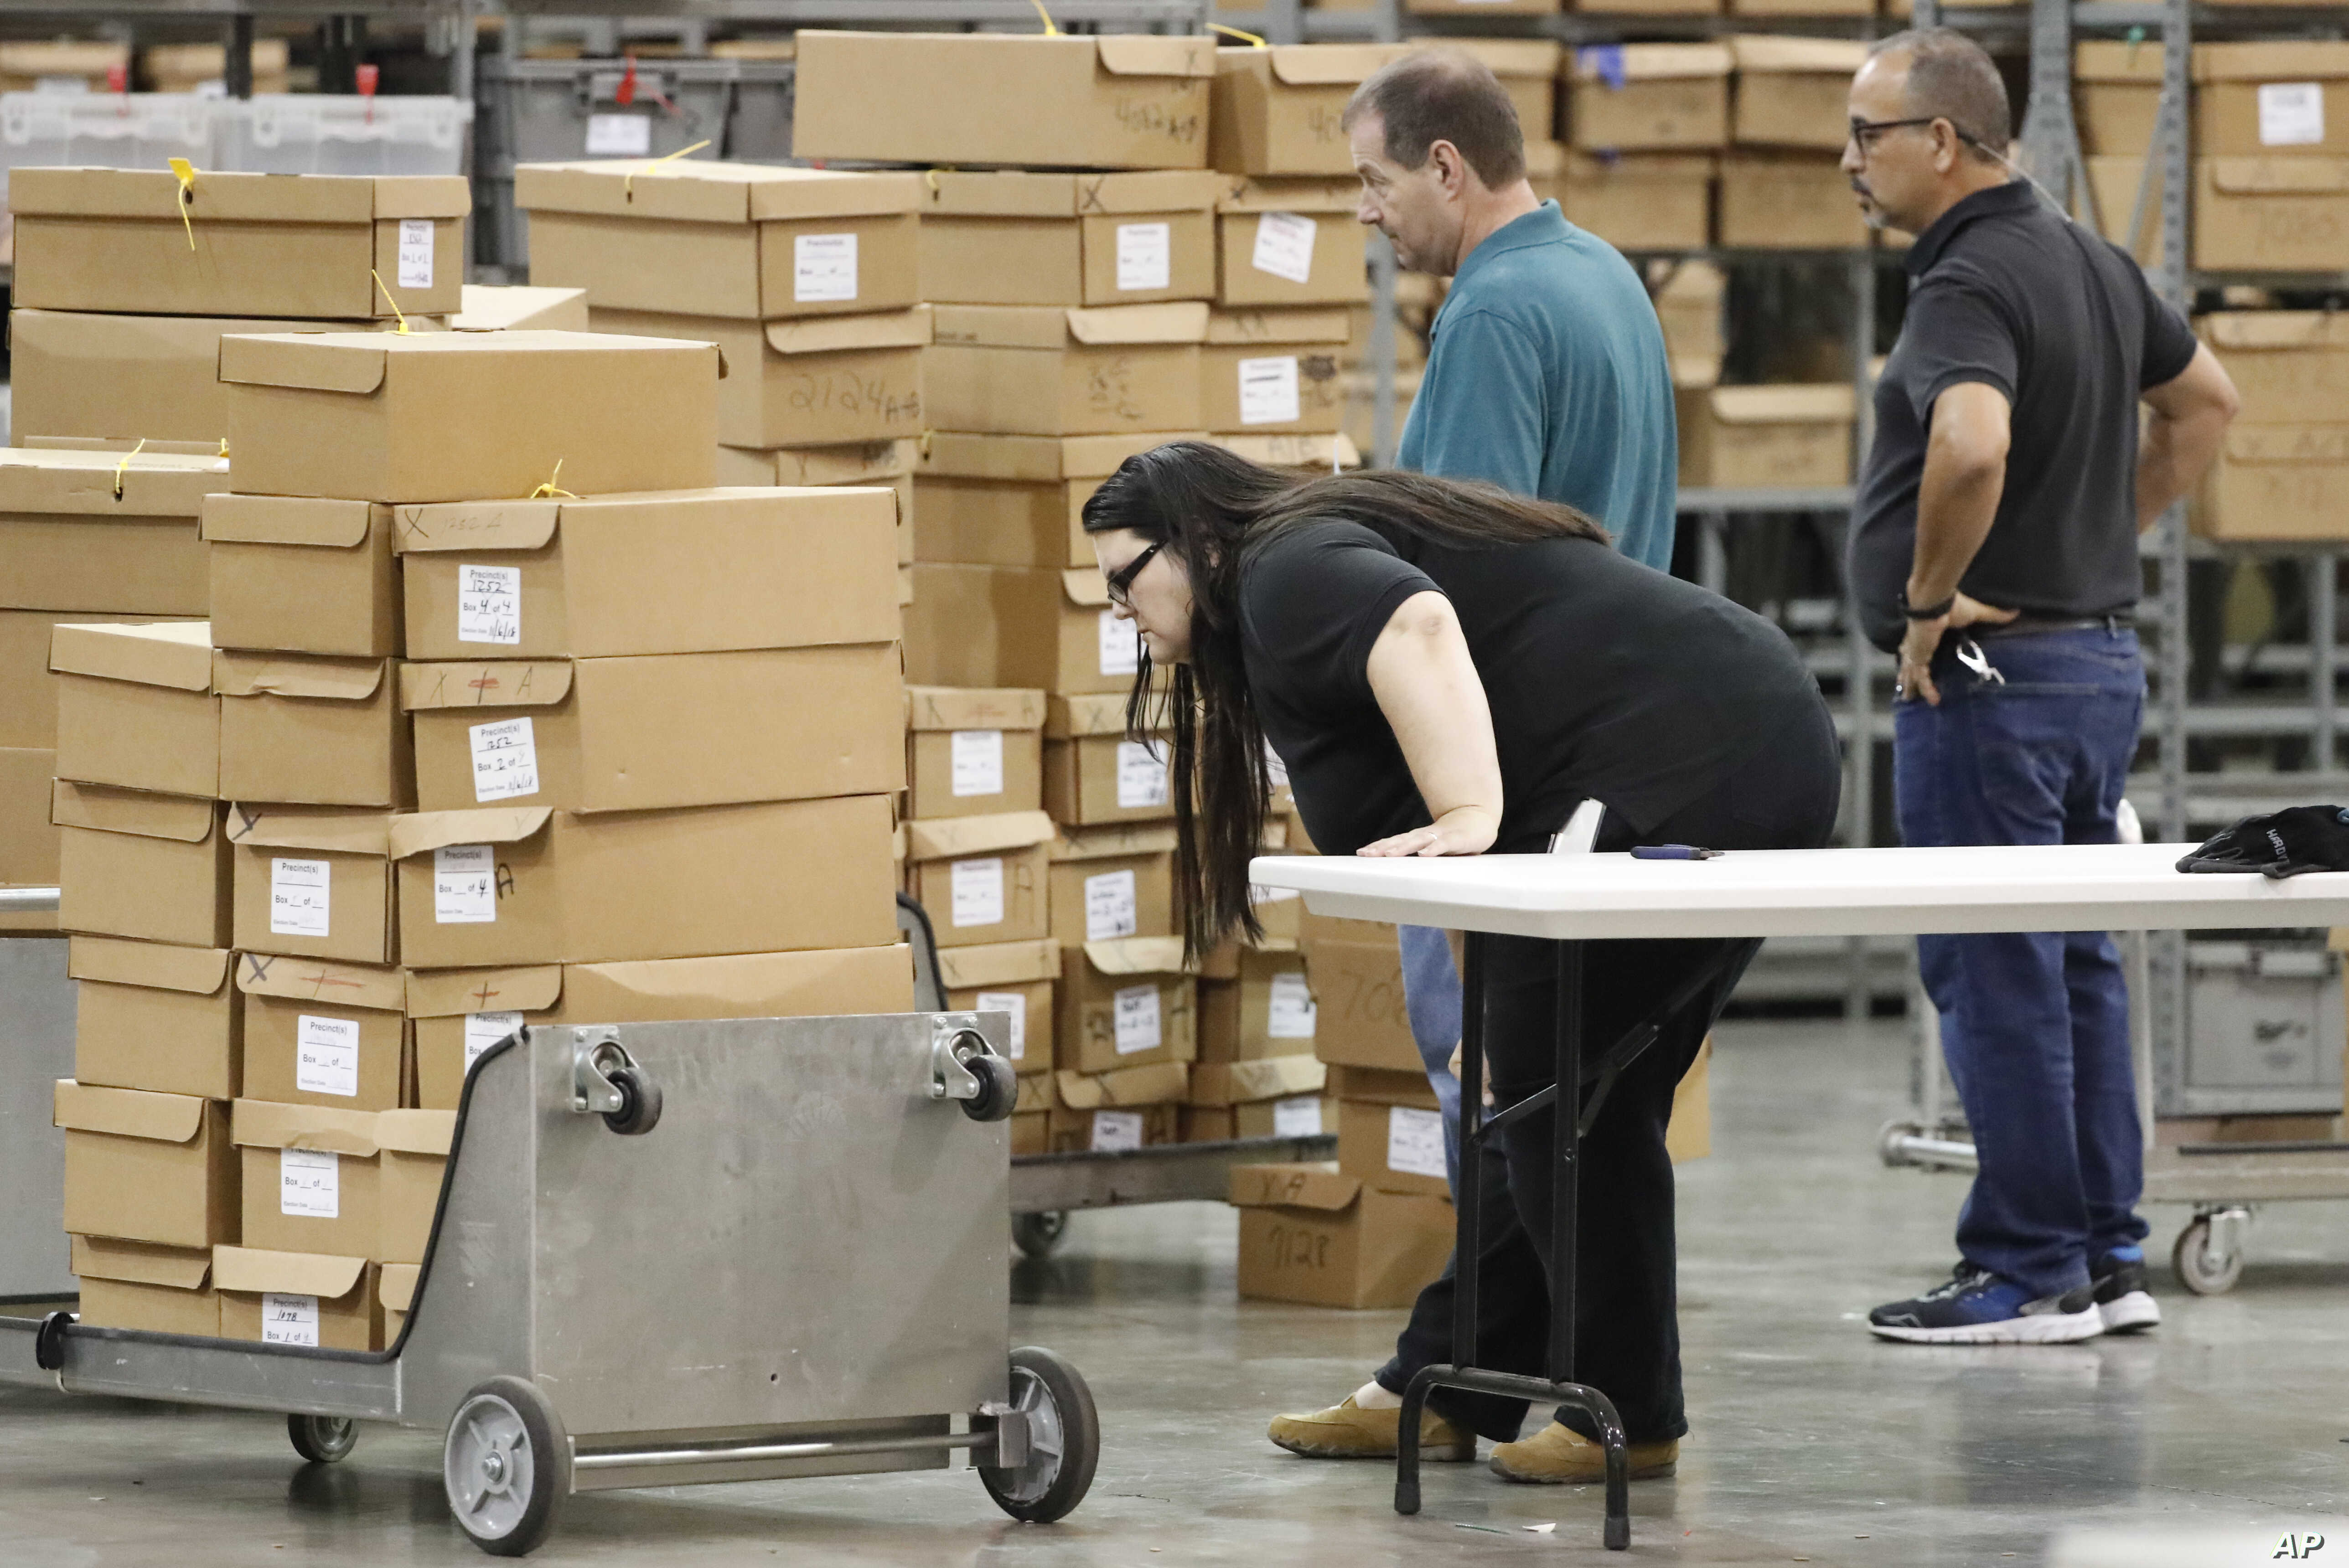 Employees prepare to unpack boxes of ballots before resuming a recount at the Palm Beach County Supervisor of Elections office, Nov. 15, 2018, in West Palm Beach, Florida.